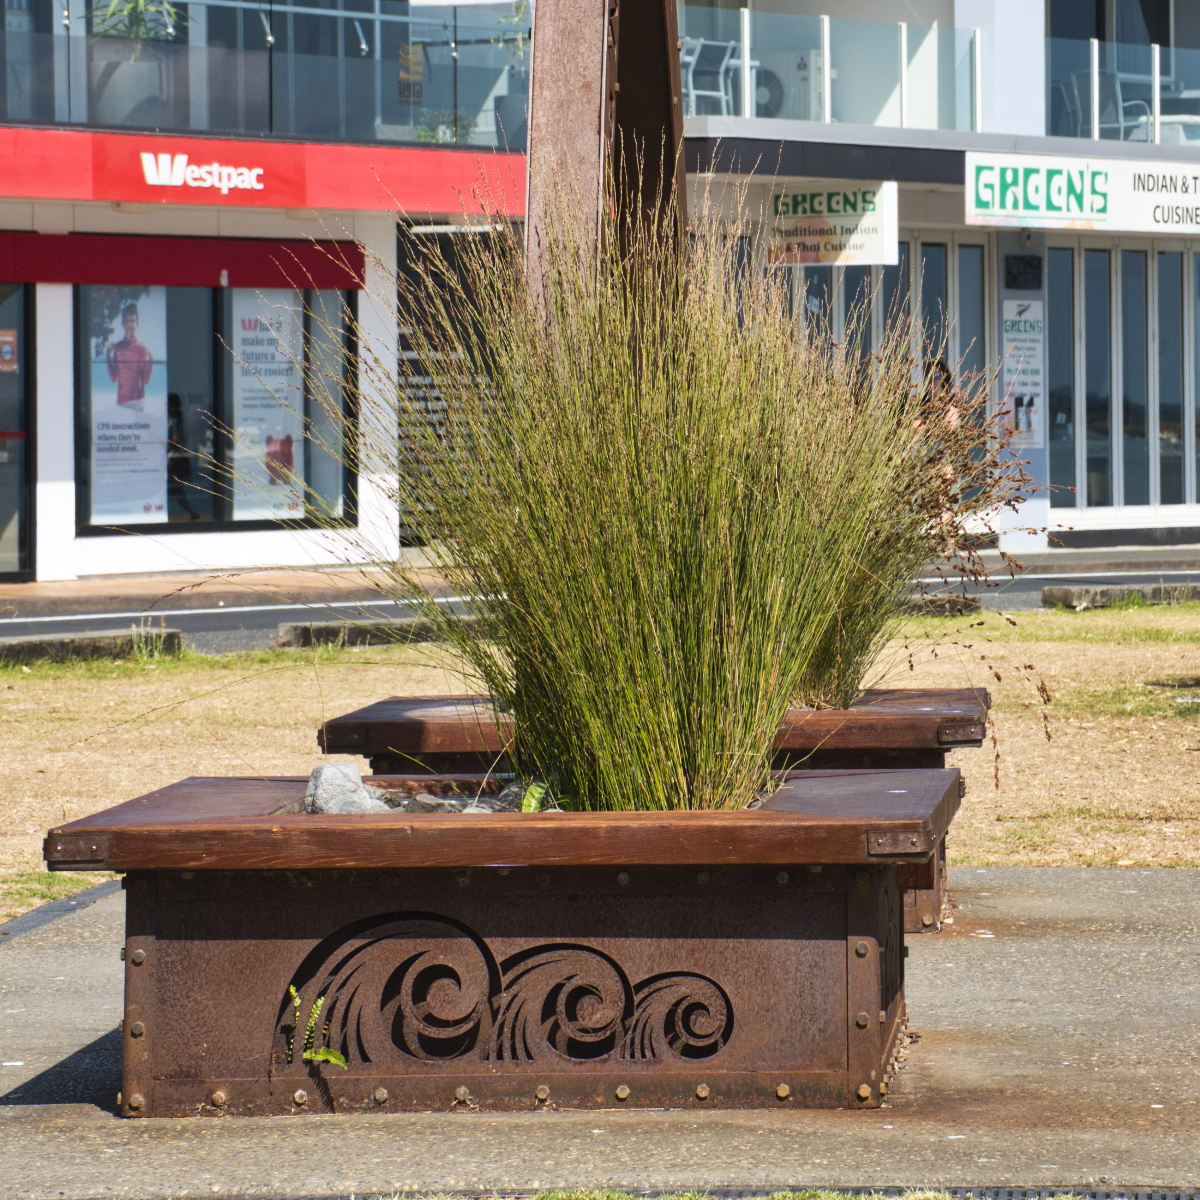 Planter box benches with the swirly pattern that can be either waves or ferns.